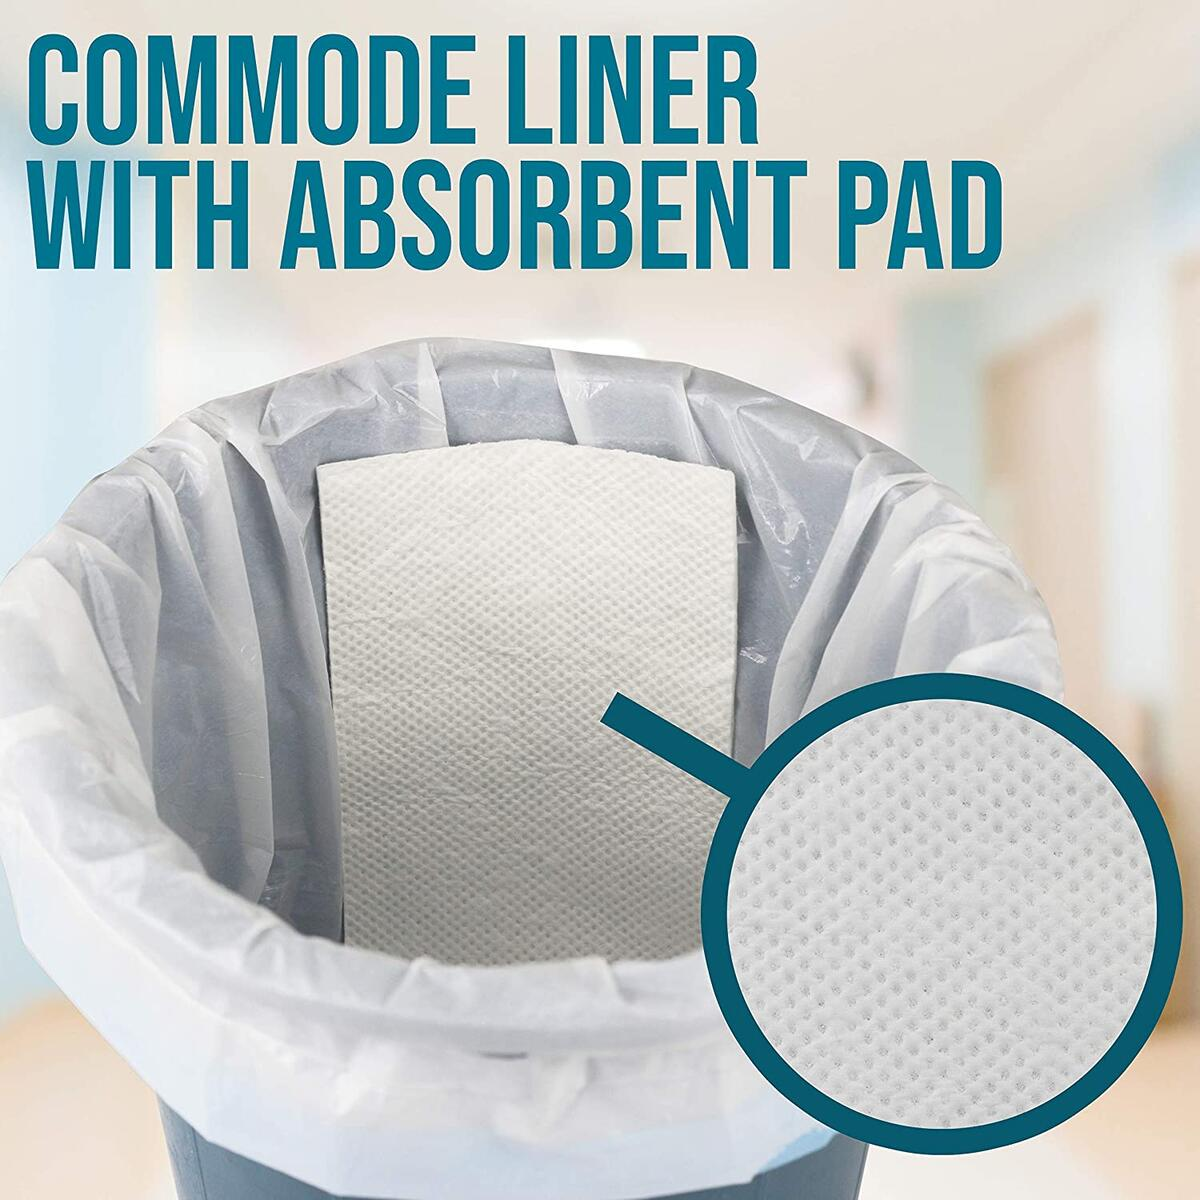 [Pack of 90] Commode Liners with Absorbent Pad, Portable Toilet Bags, Bedside Commode Liners Disposable, Potty Chair Liners, Commode Bucket Liners